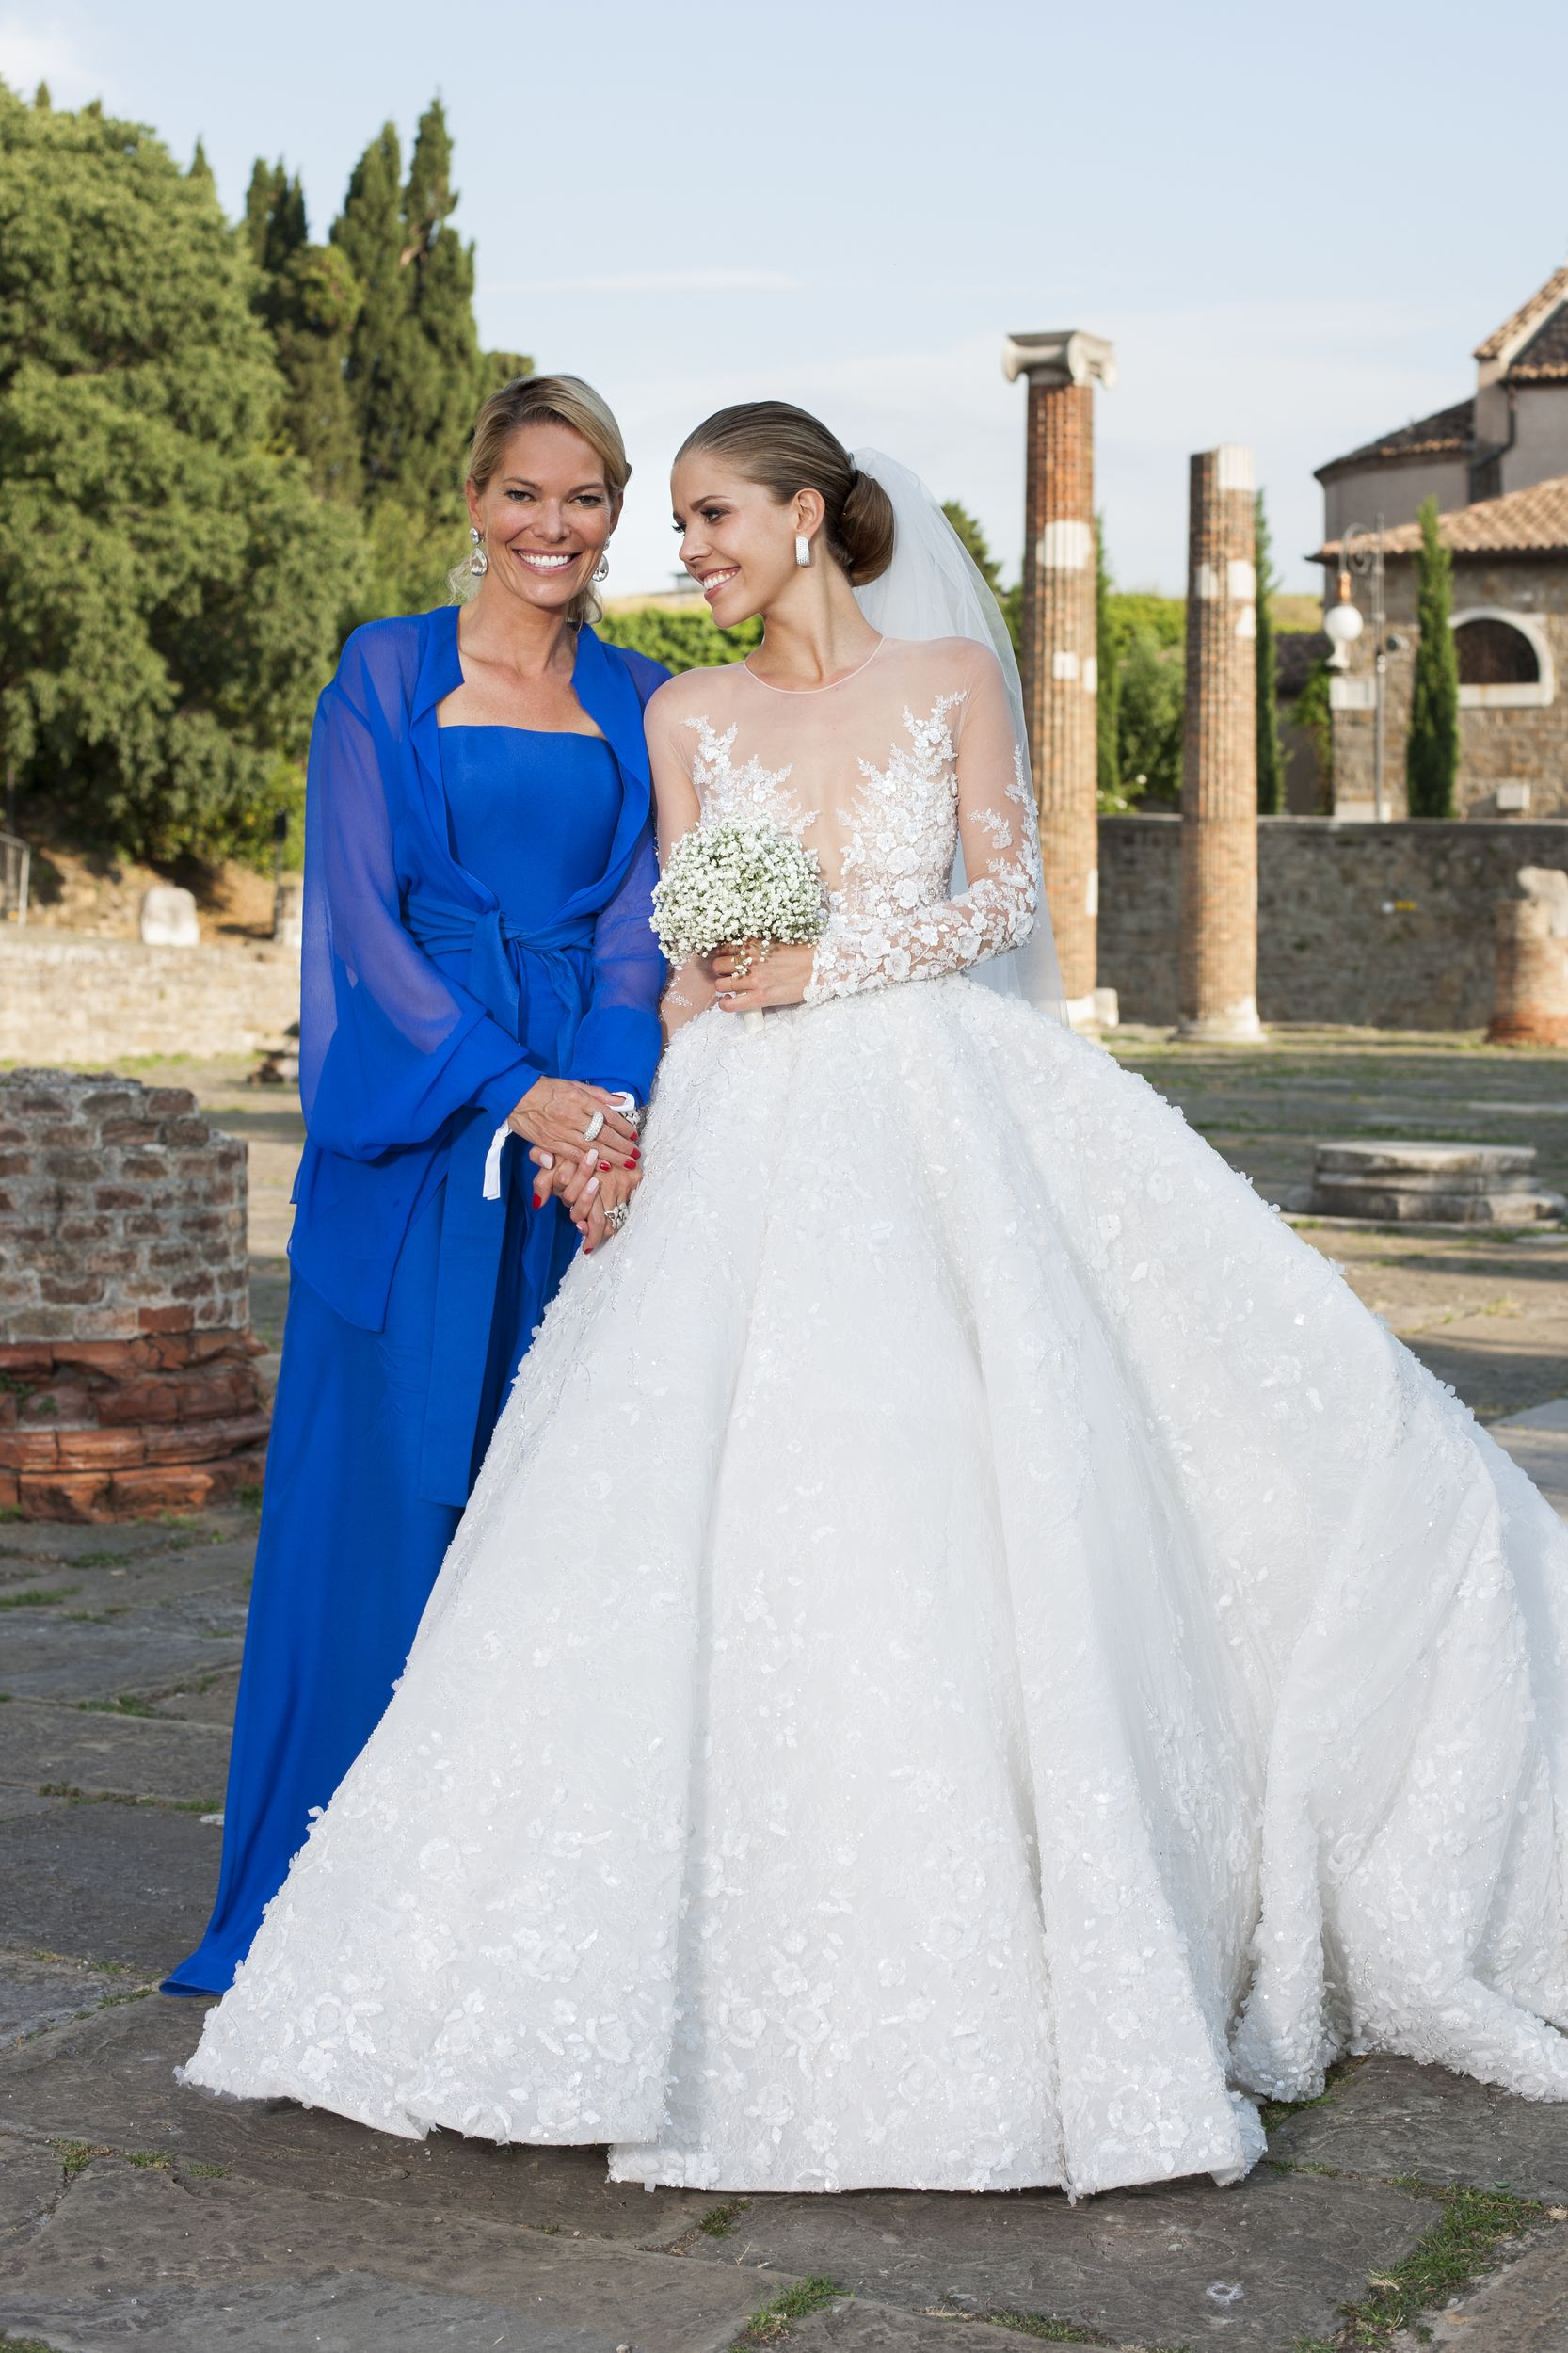 Gemstone Heiress Victoria Swarovski Ties The Knot In 500,000